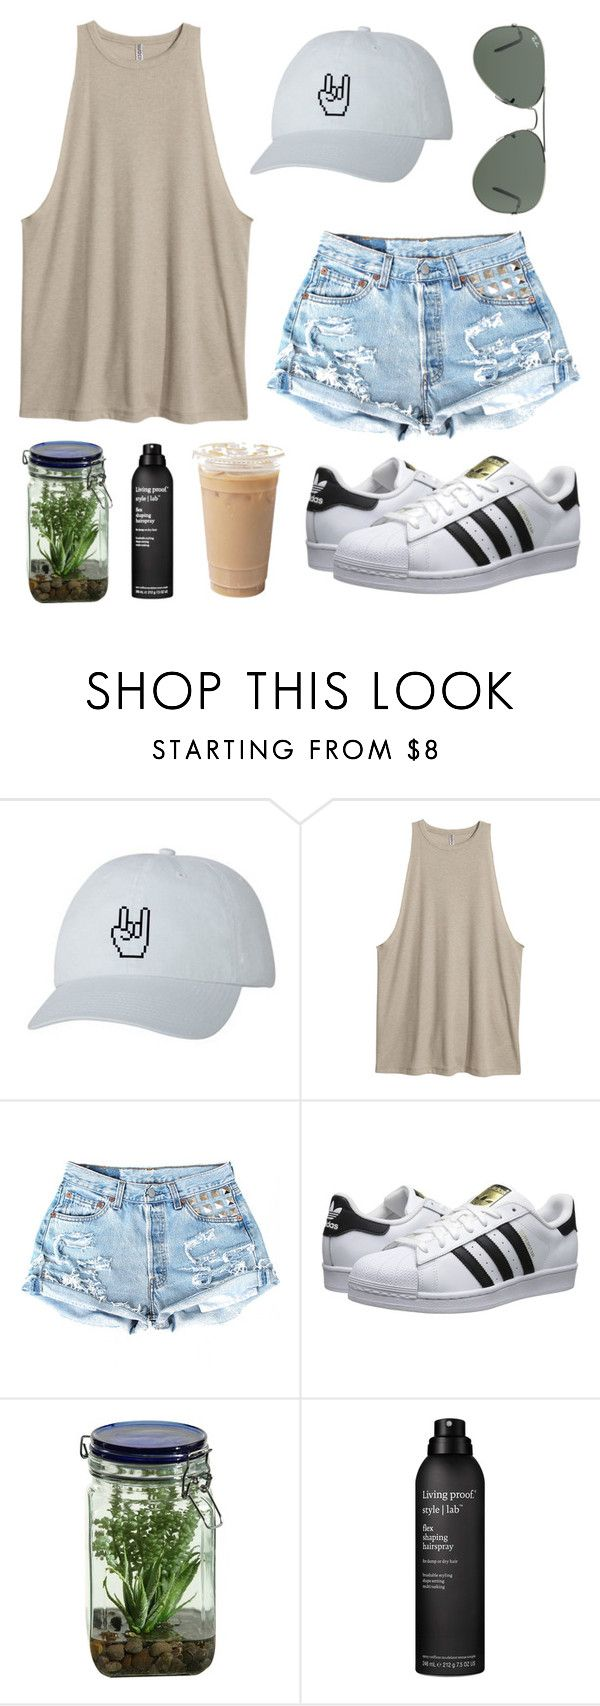 """""""Untitled #42"""" by ttaylxr ❤ liked on Polyvore featuring adidas Originals, Alöe, Living Proof and Ray-Ban"""